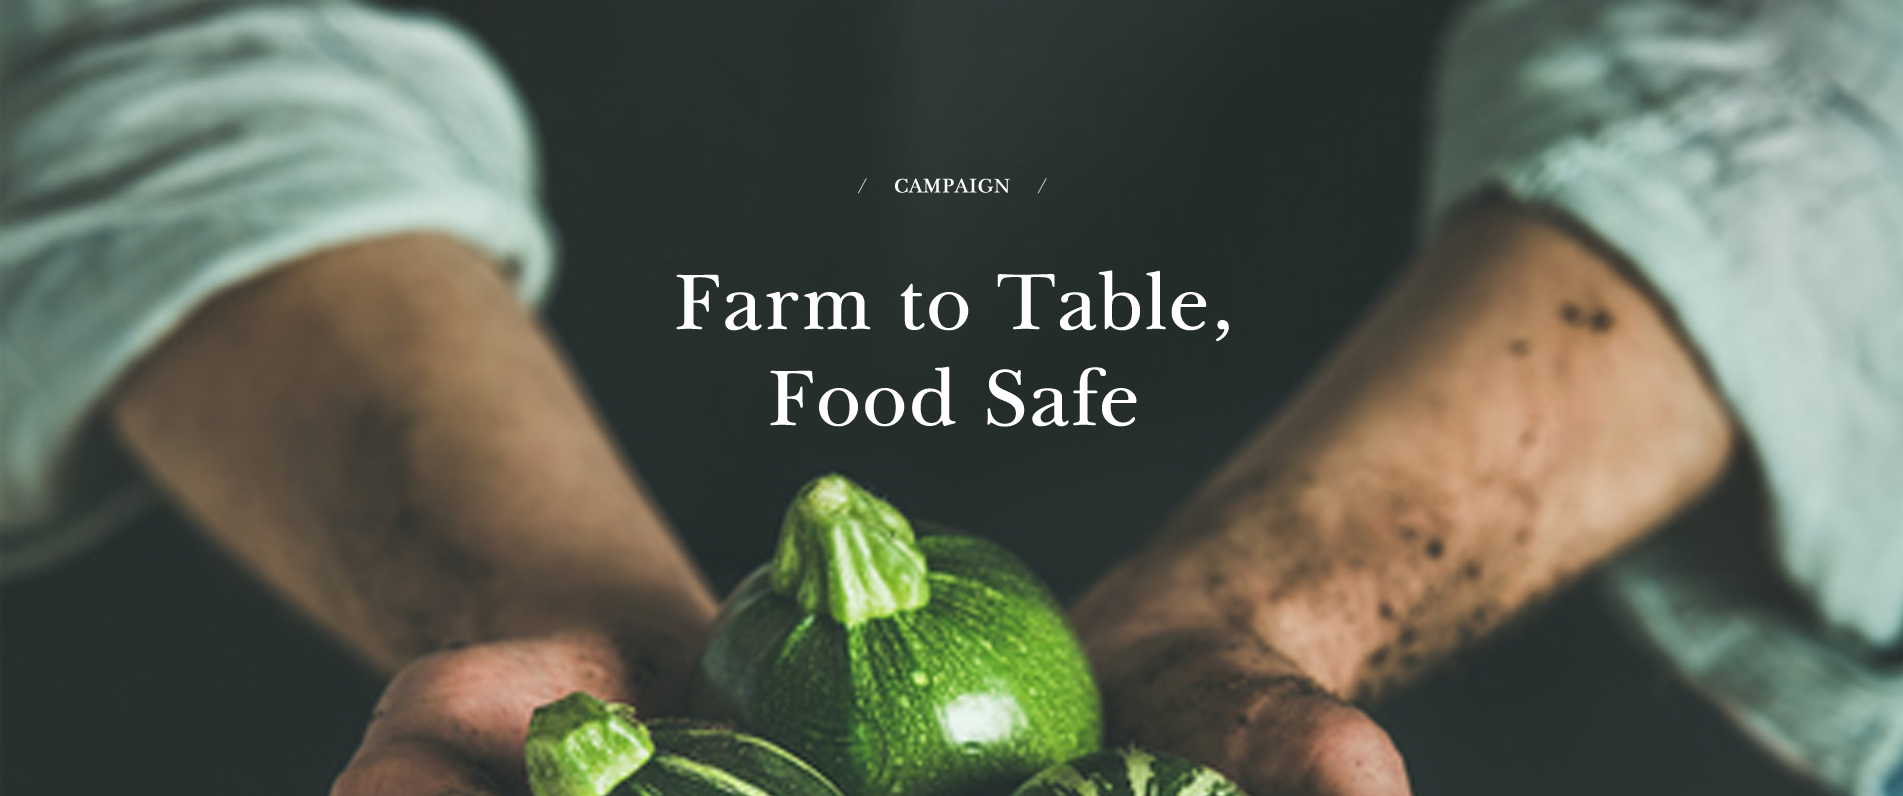 메인배너4-Farm to Table, Food Safe